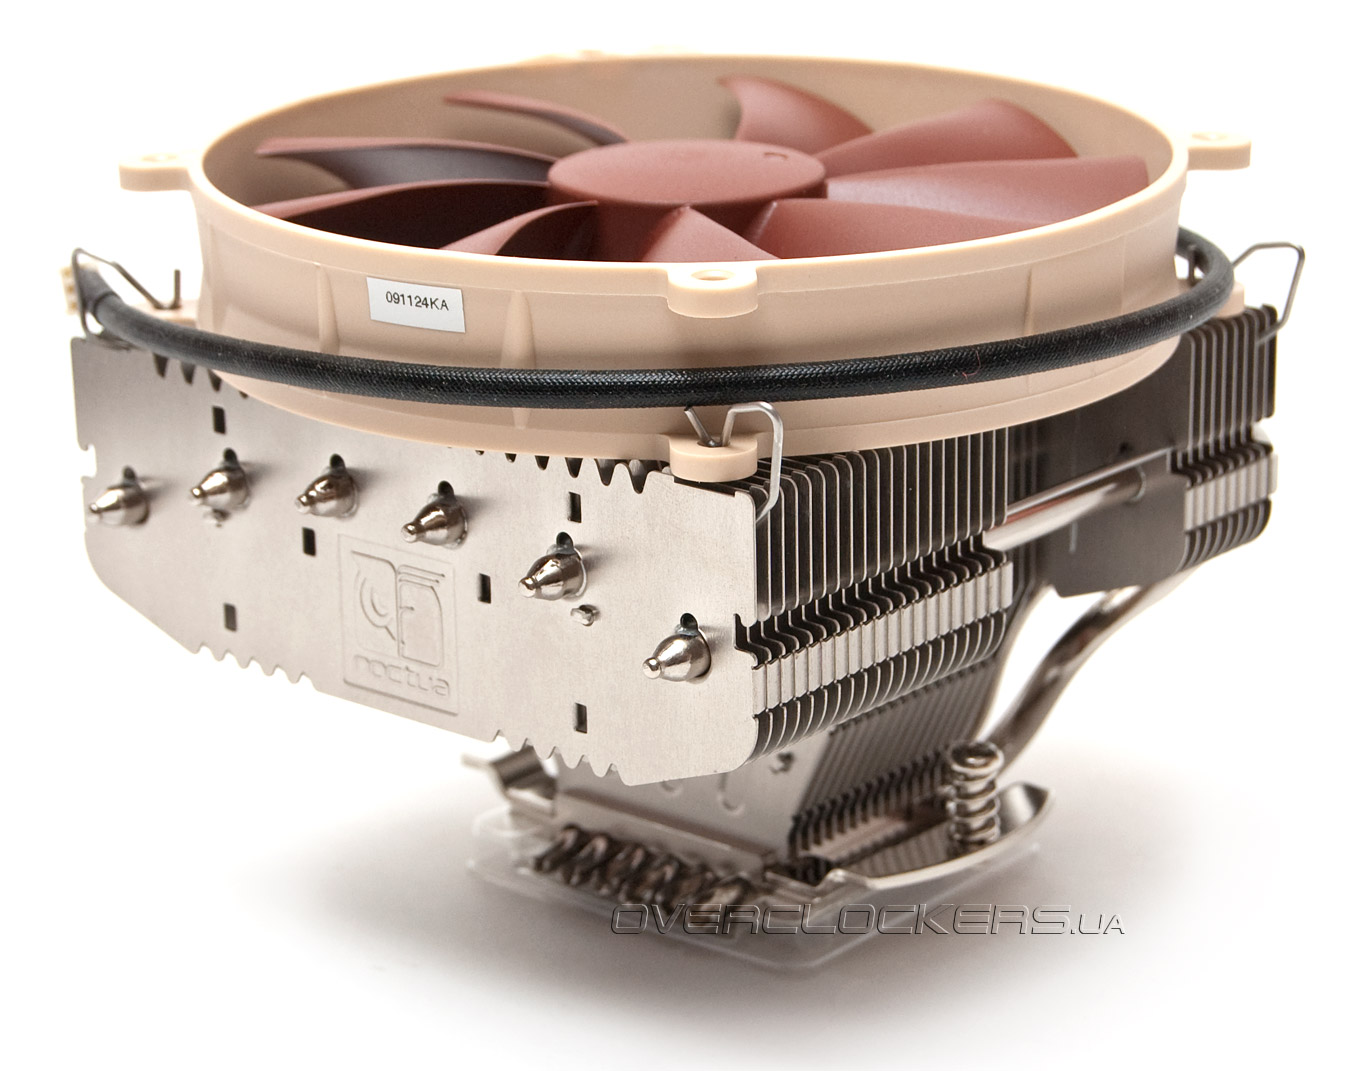 25-big-noctua-nh-c12-se14.jpg